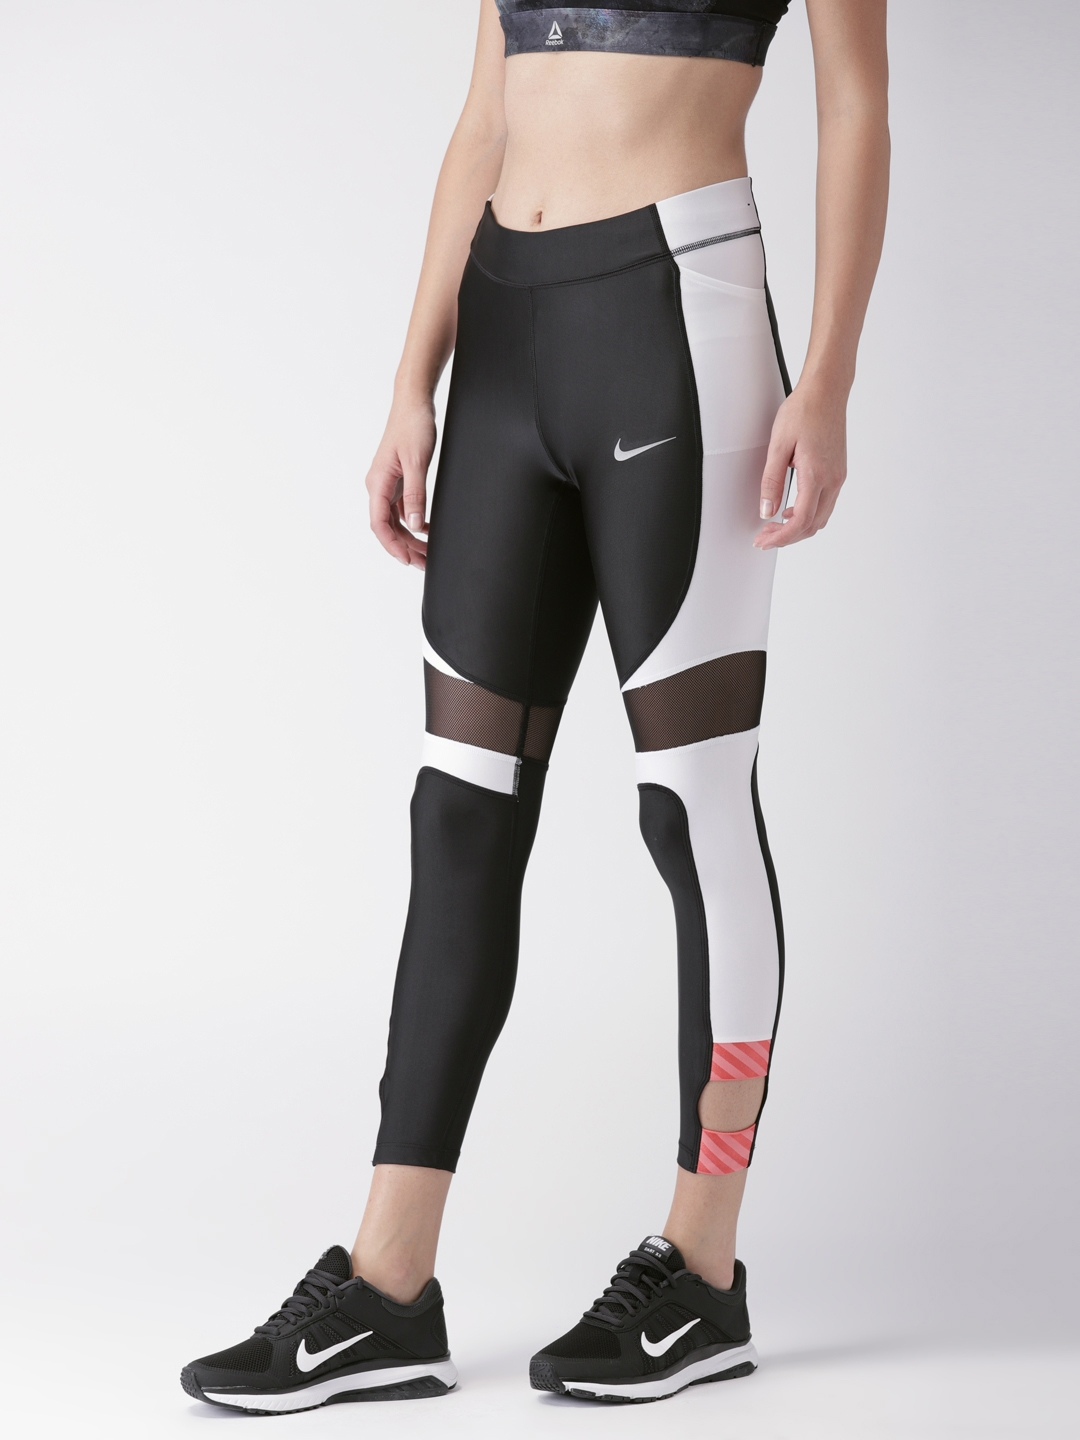 129e3d1b75155d Nike Women Black Solid Tight Fit AS W NK SPEED TGHT 7_8 SD Running Tights